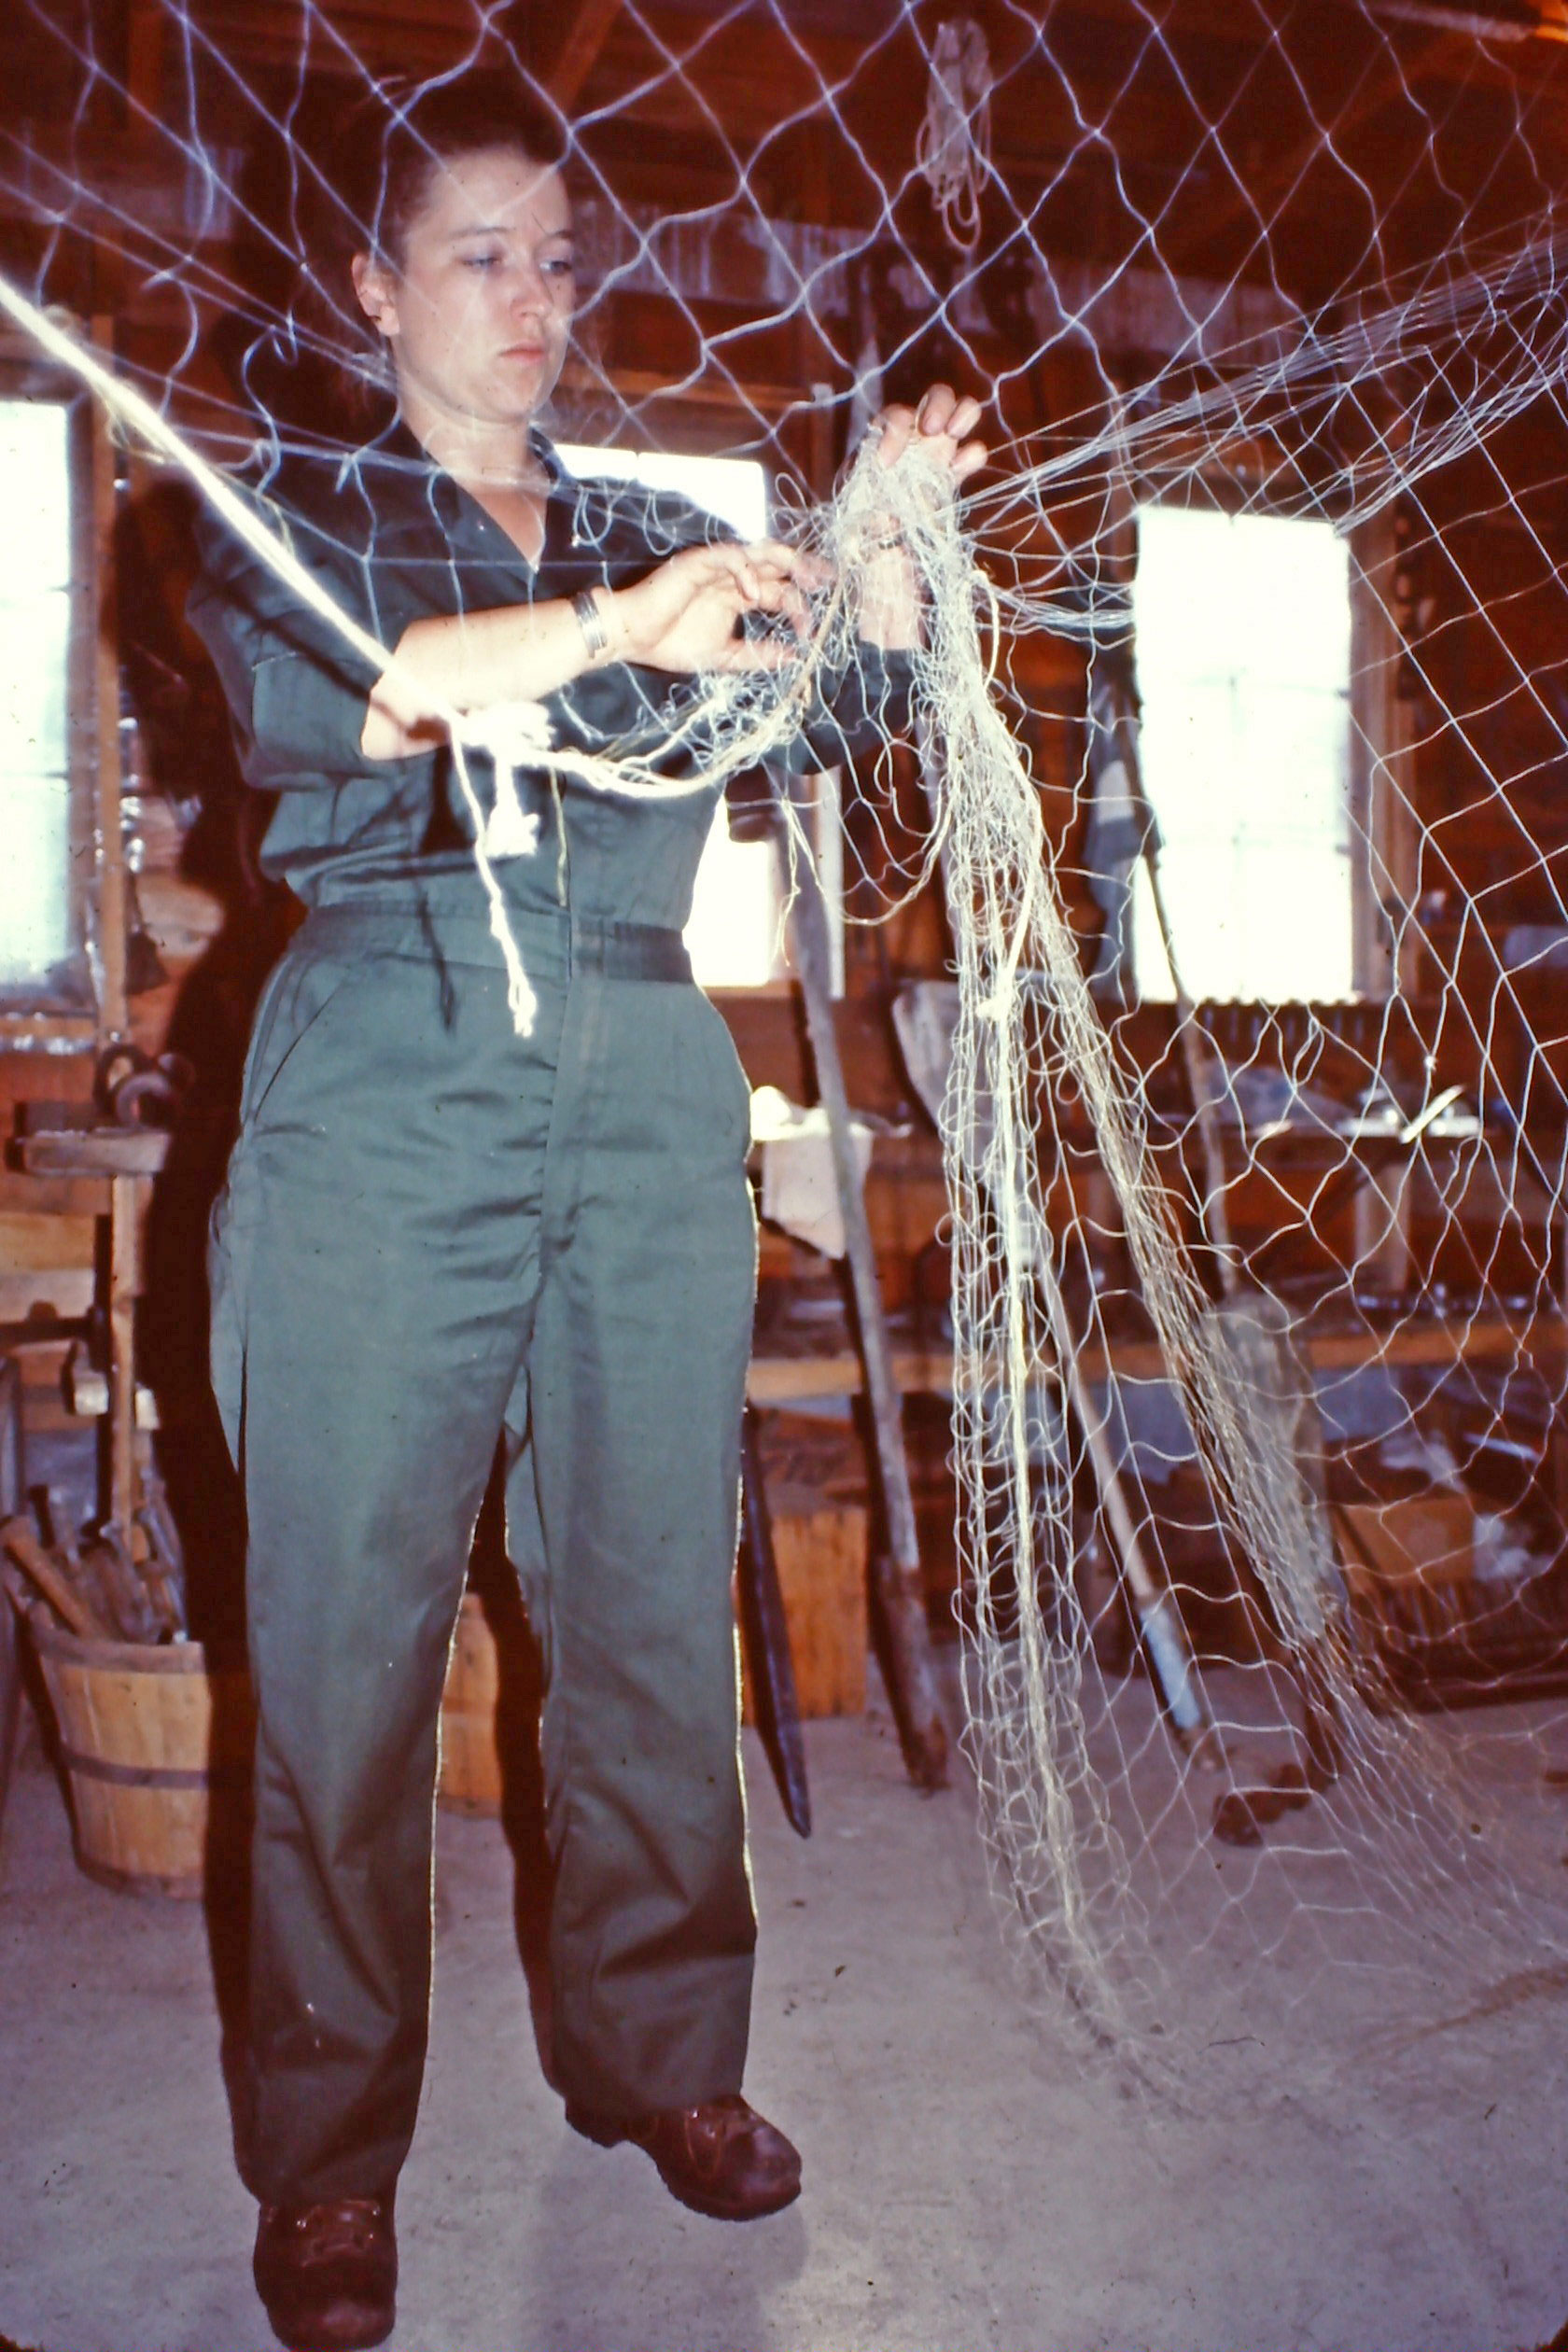 Susan working with gill net in the Hokenson Fishery